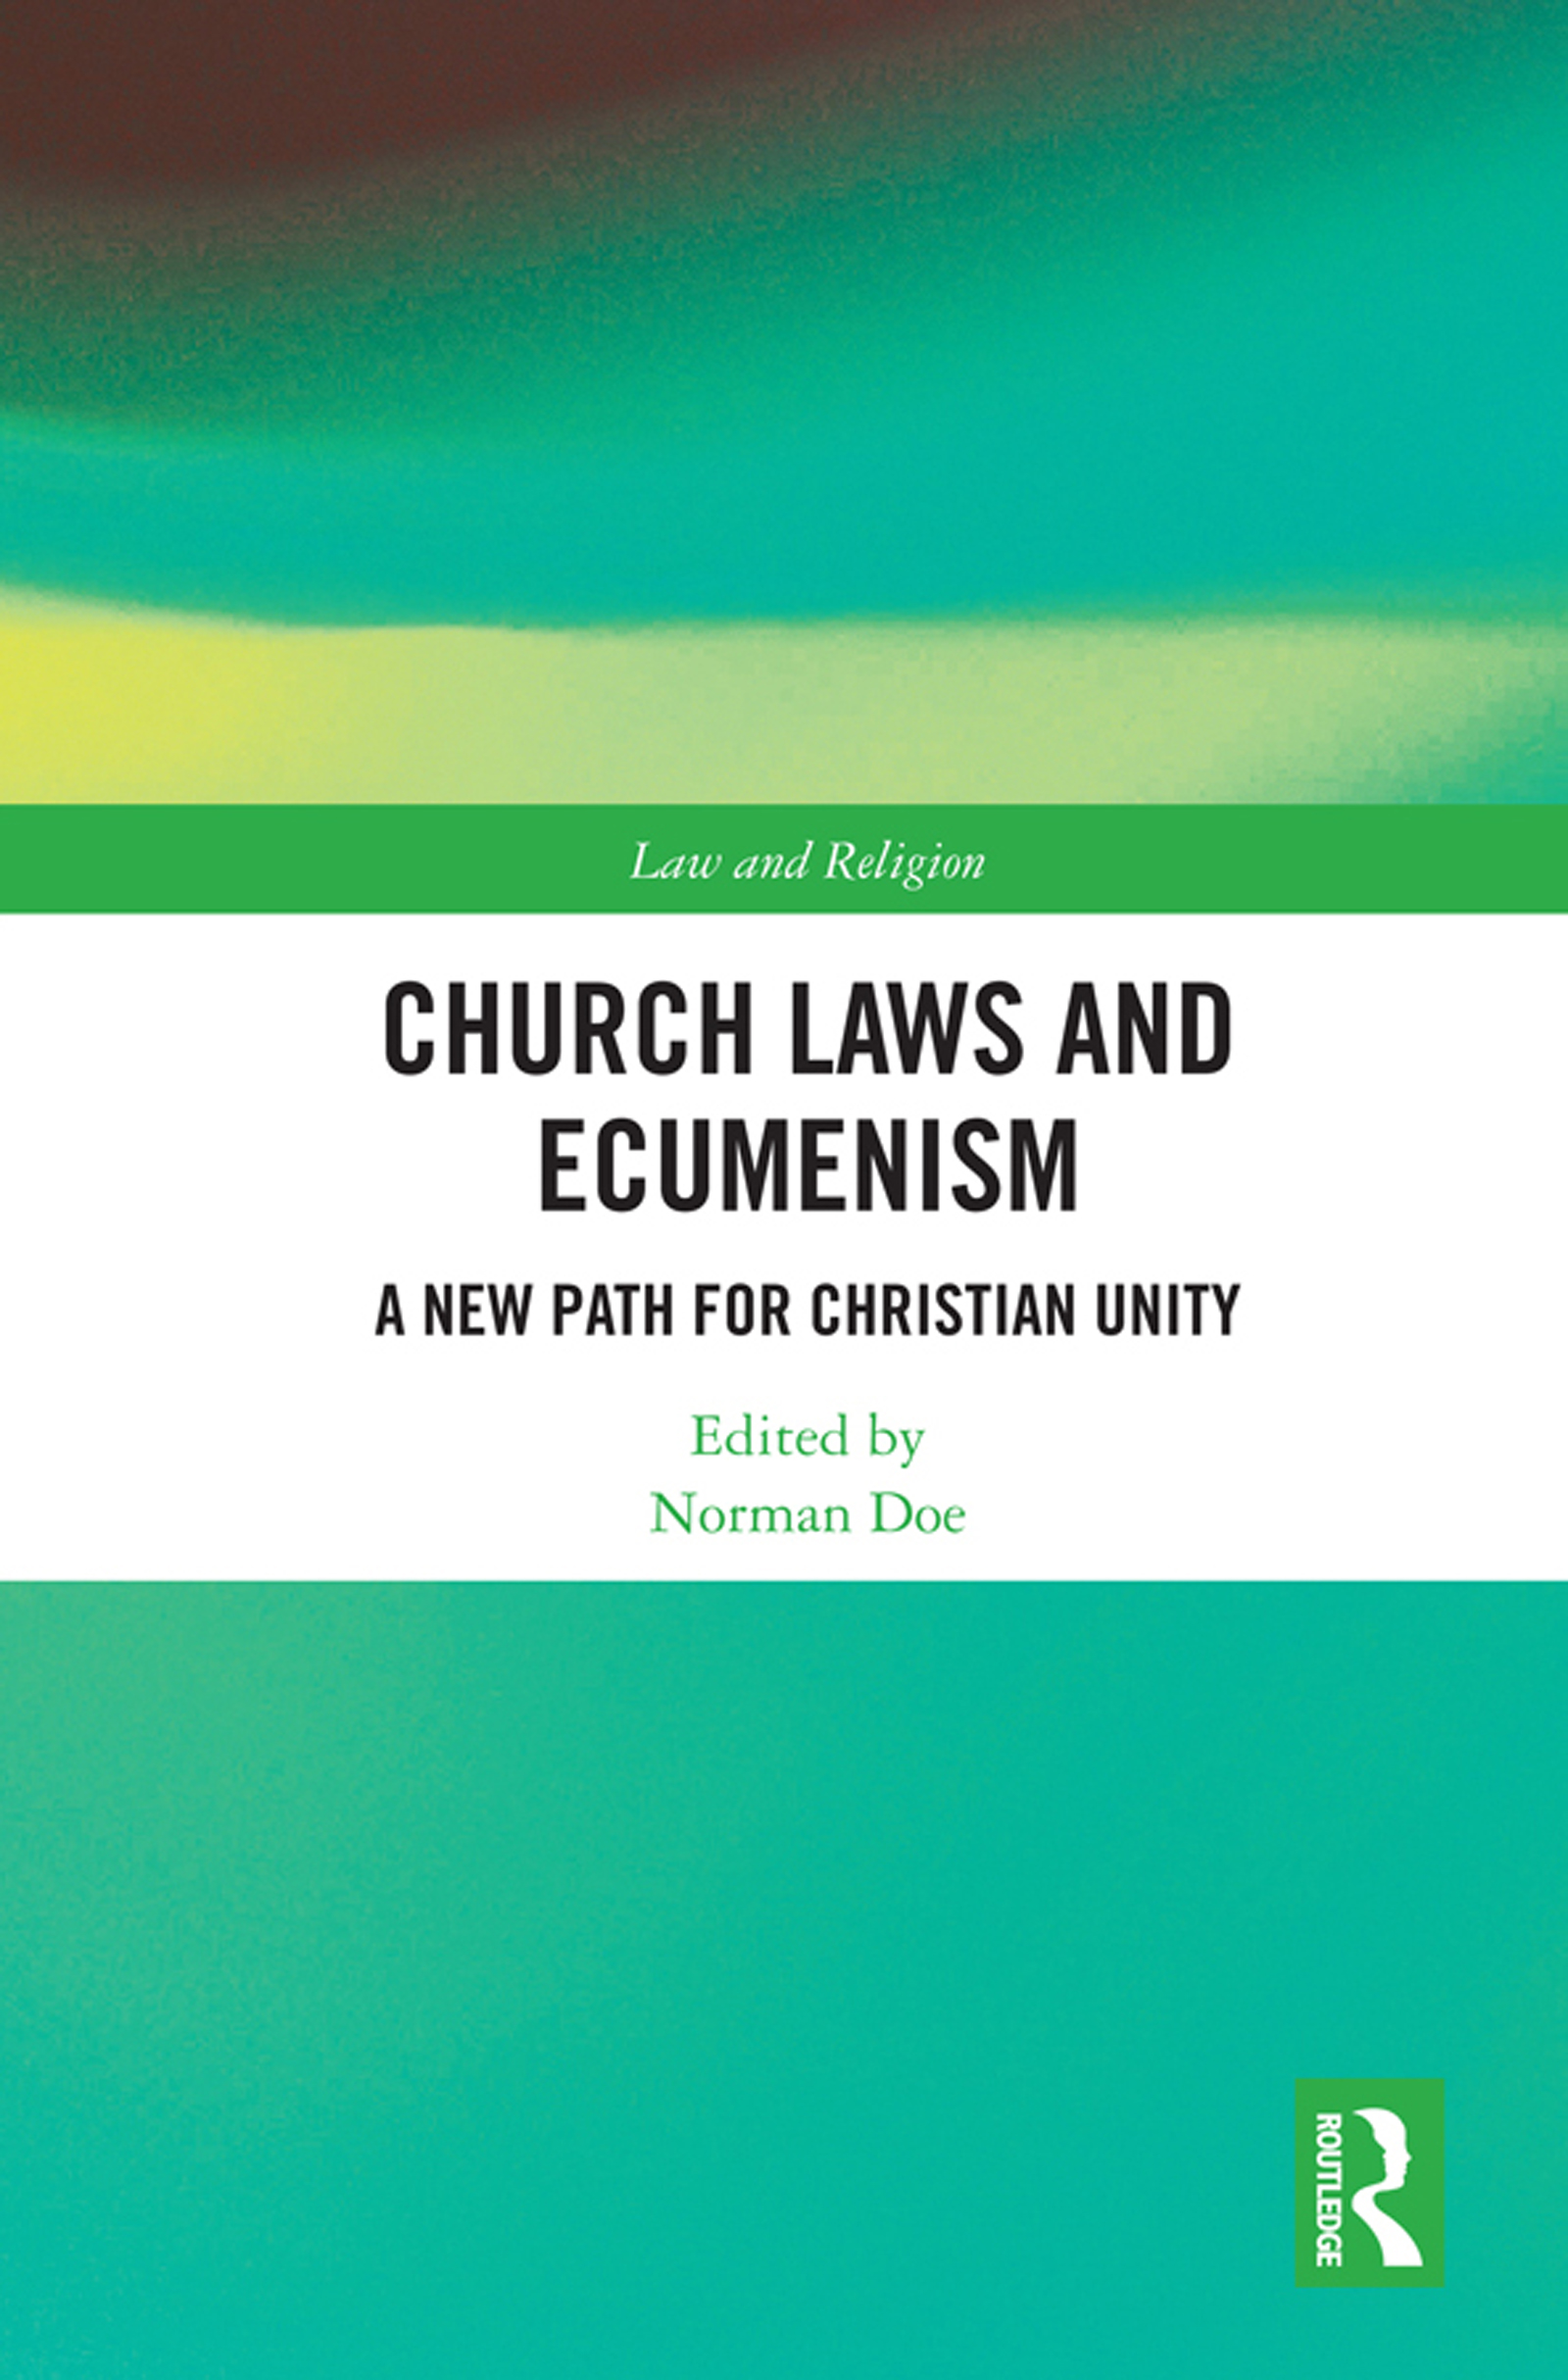 Church Laws and Ecumenism